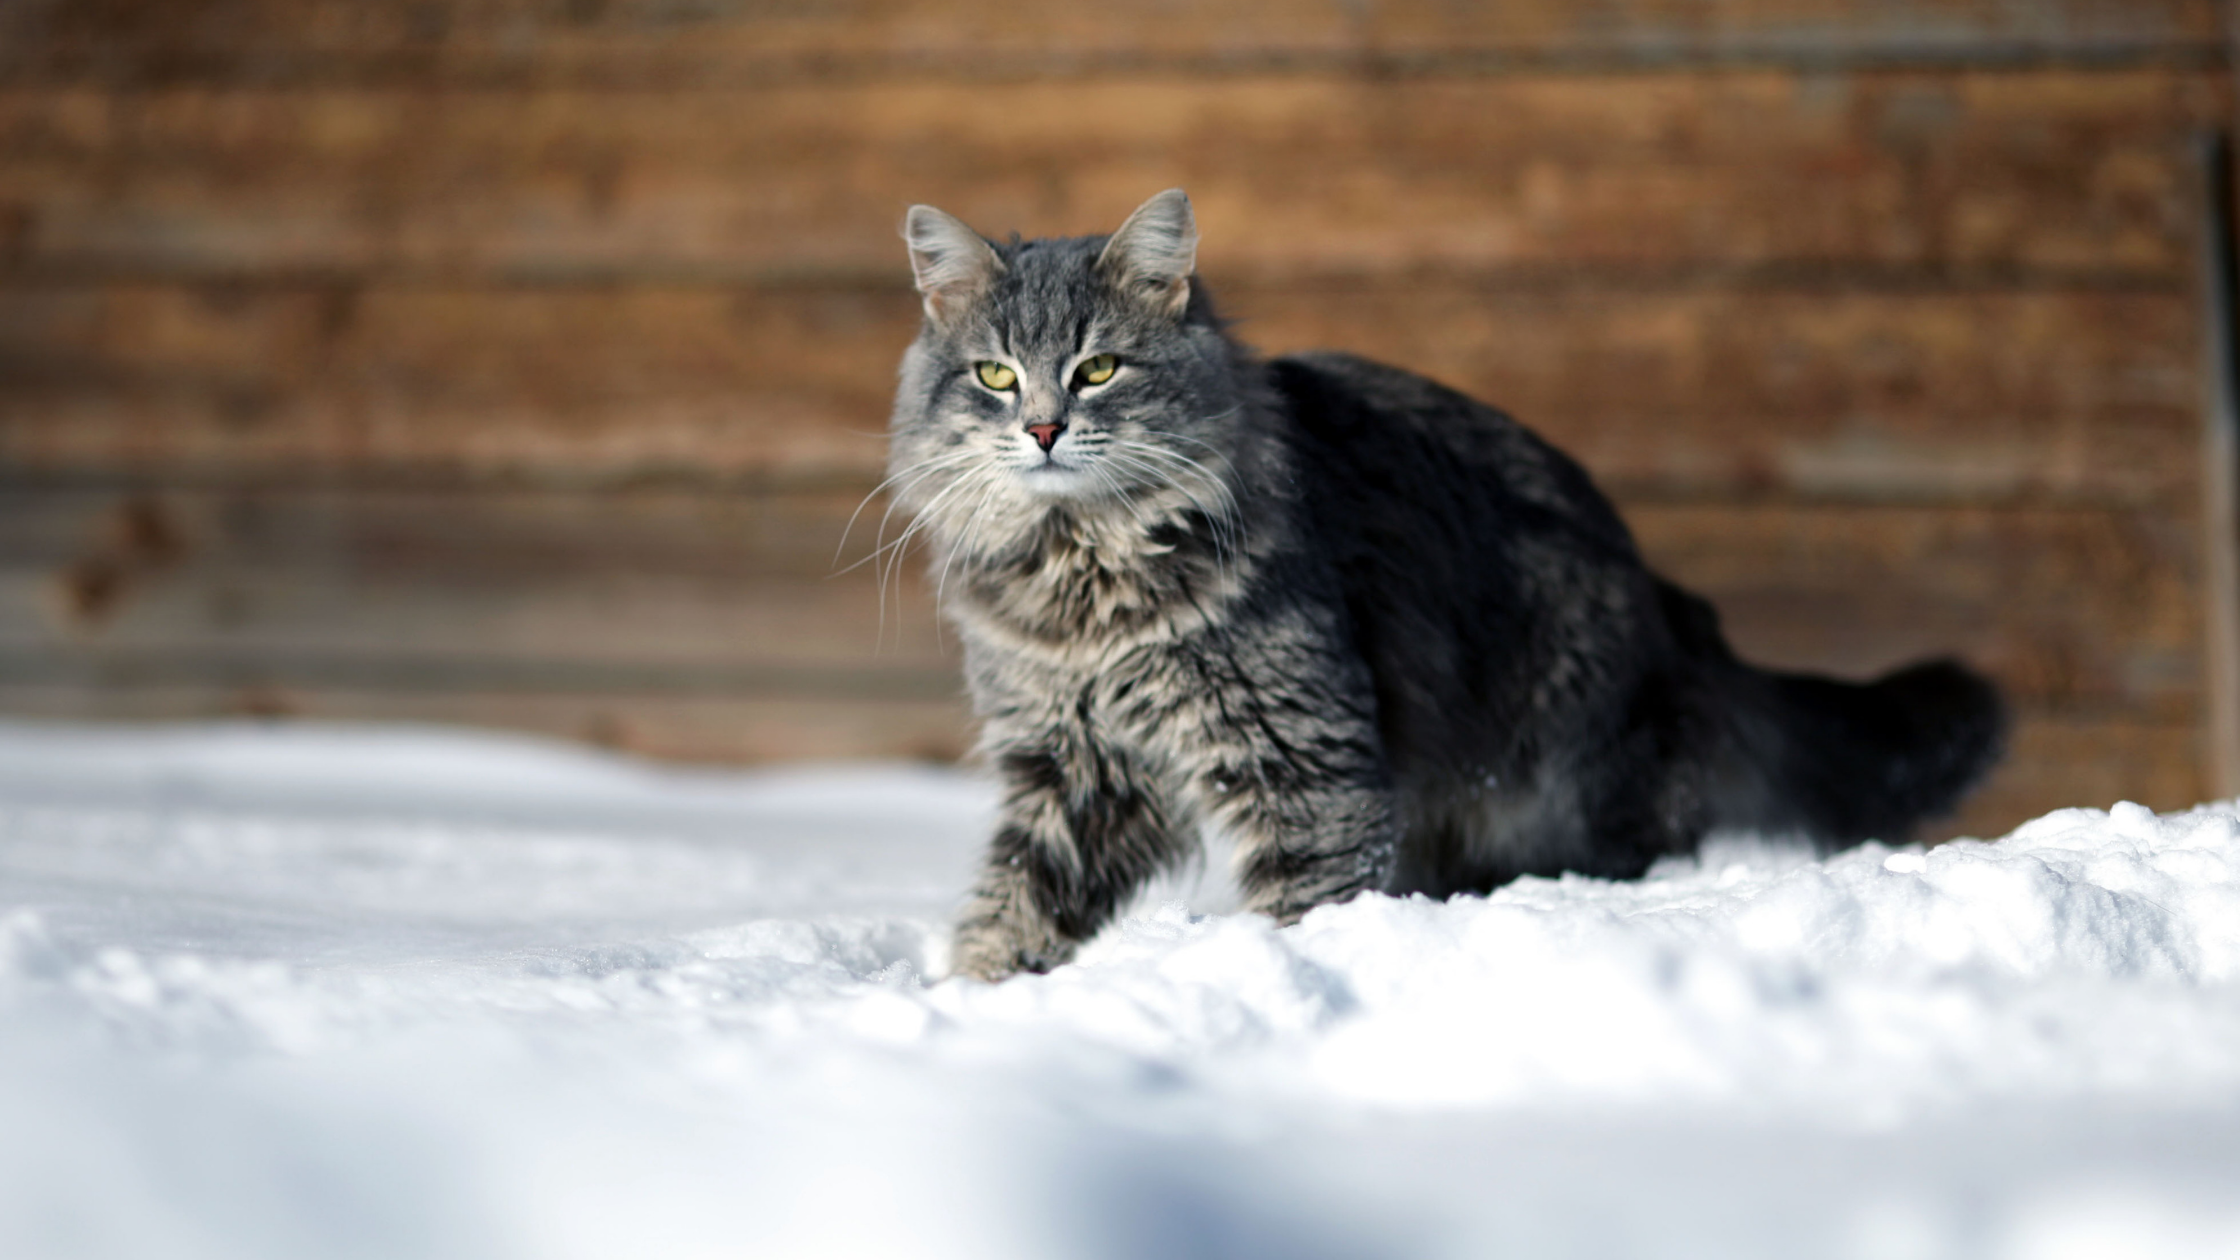 Protecting cats against dampness